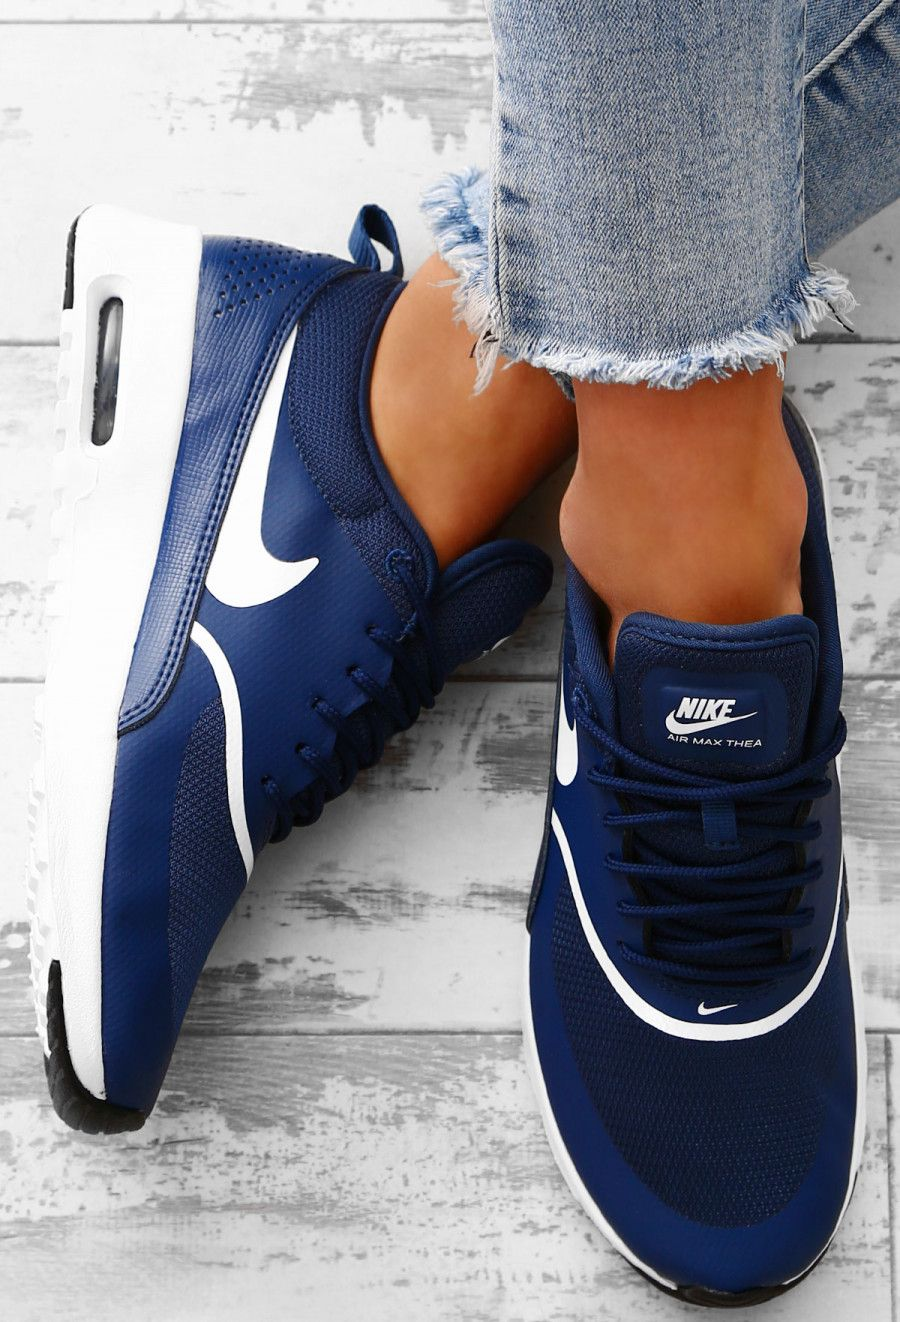 estoy enfermo Pedir prestado Campo de minas  Nike Air Max Thea Navy Trainers - UK 3 | Navy blue nike shoes ...